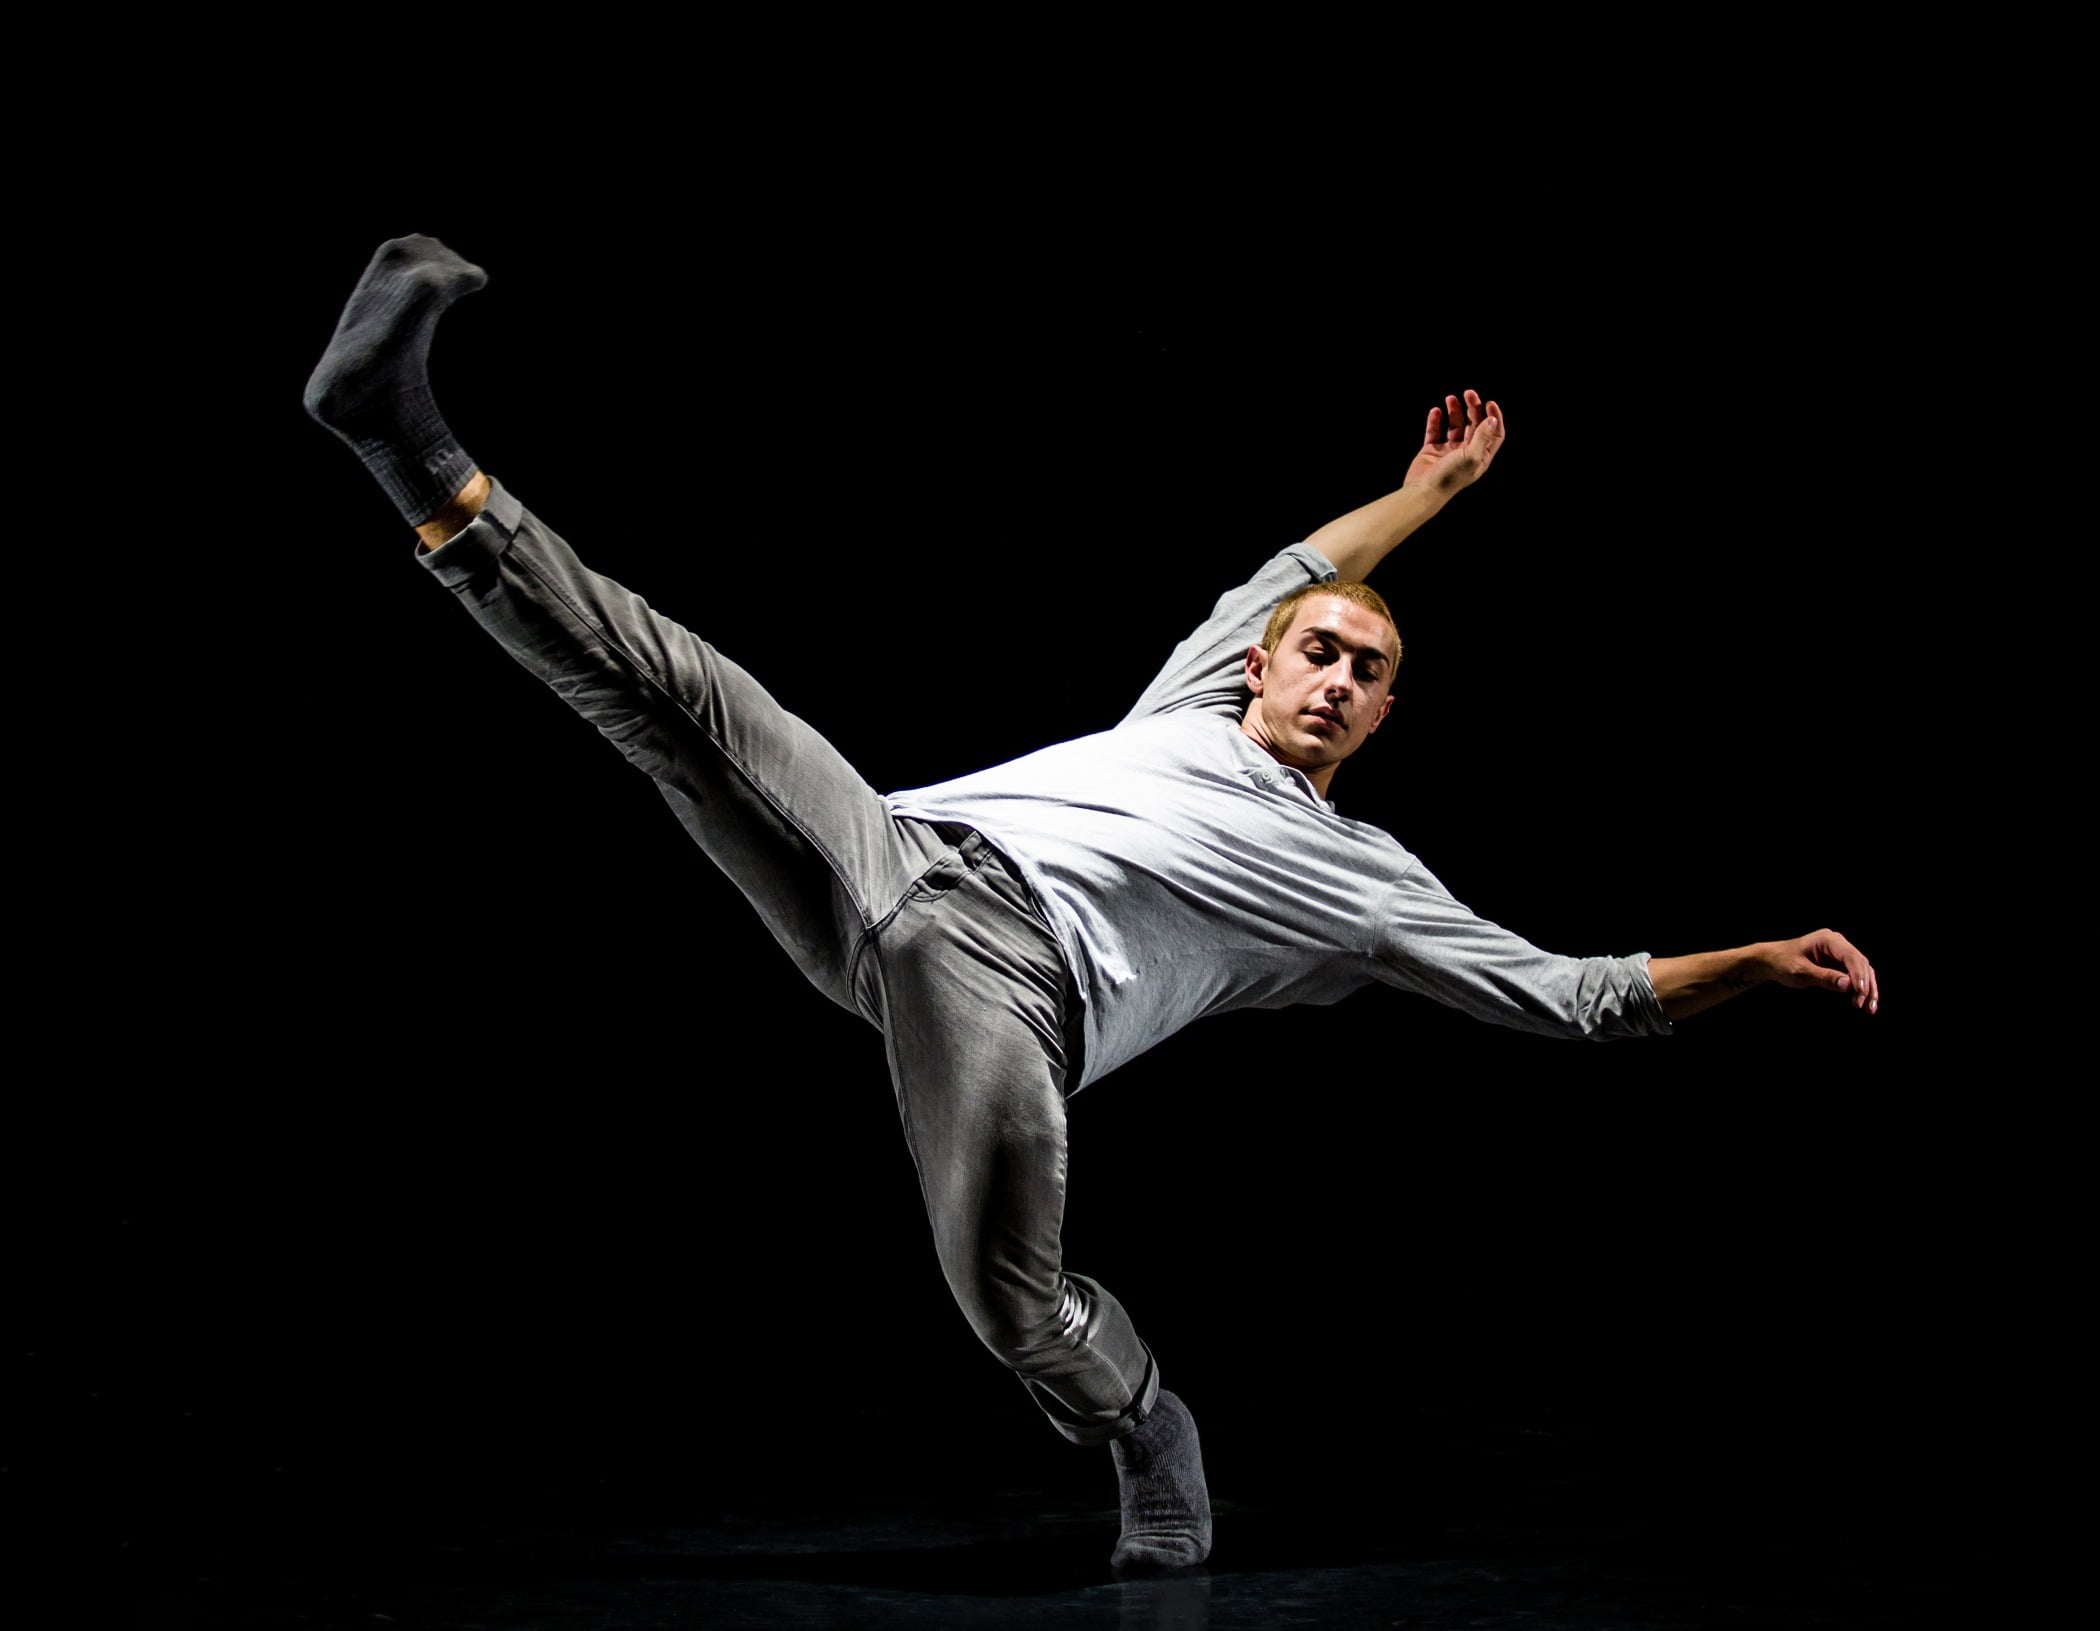 Athletic dance move, Flash photography, Trousers